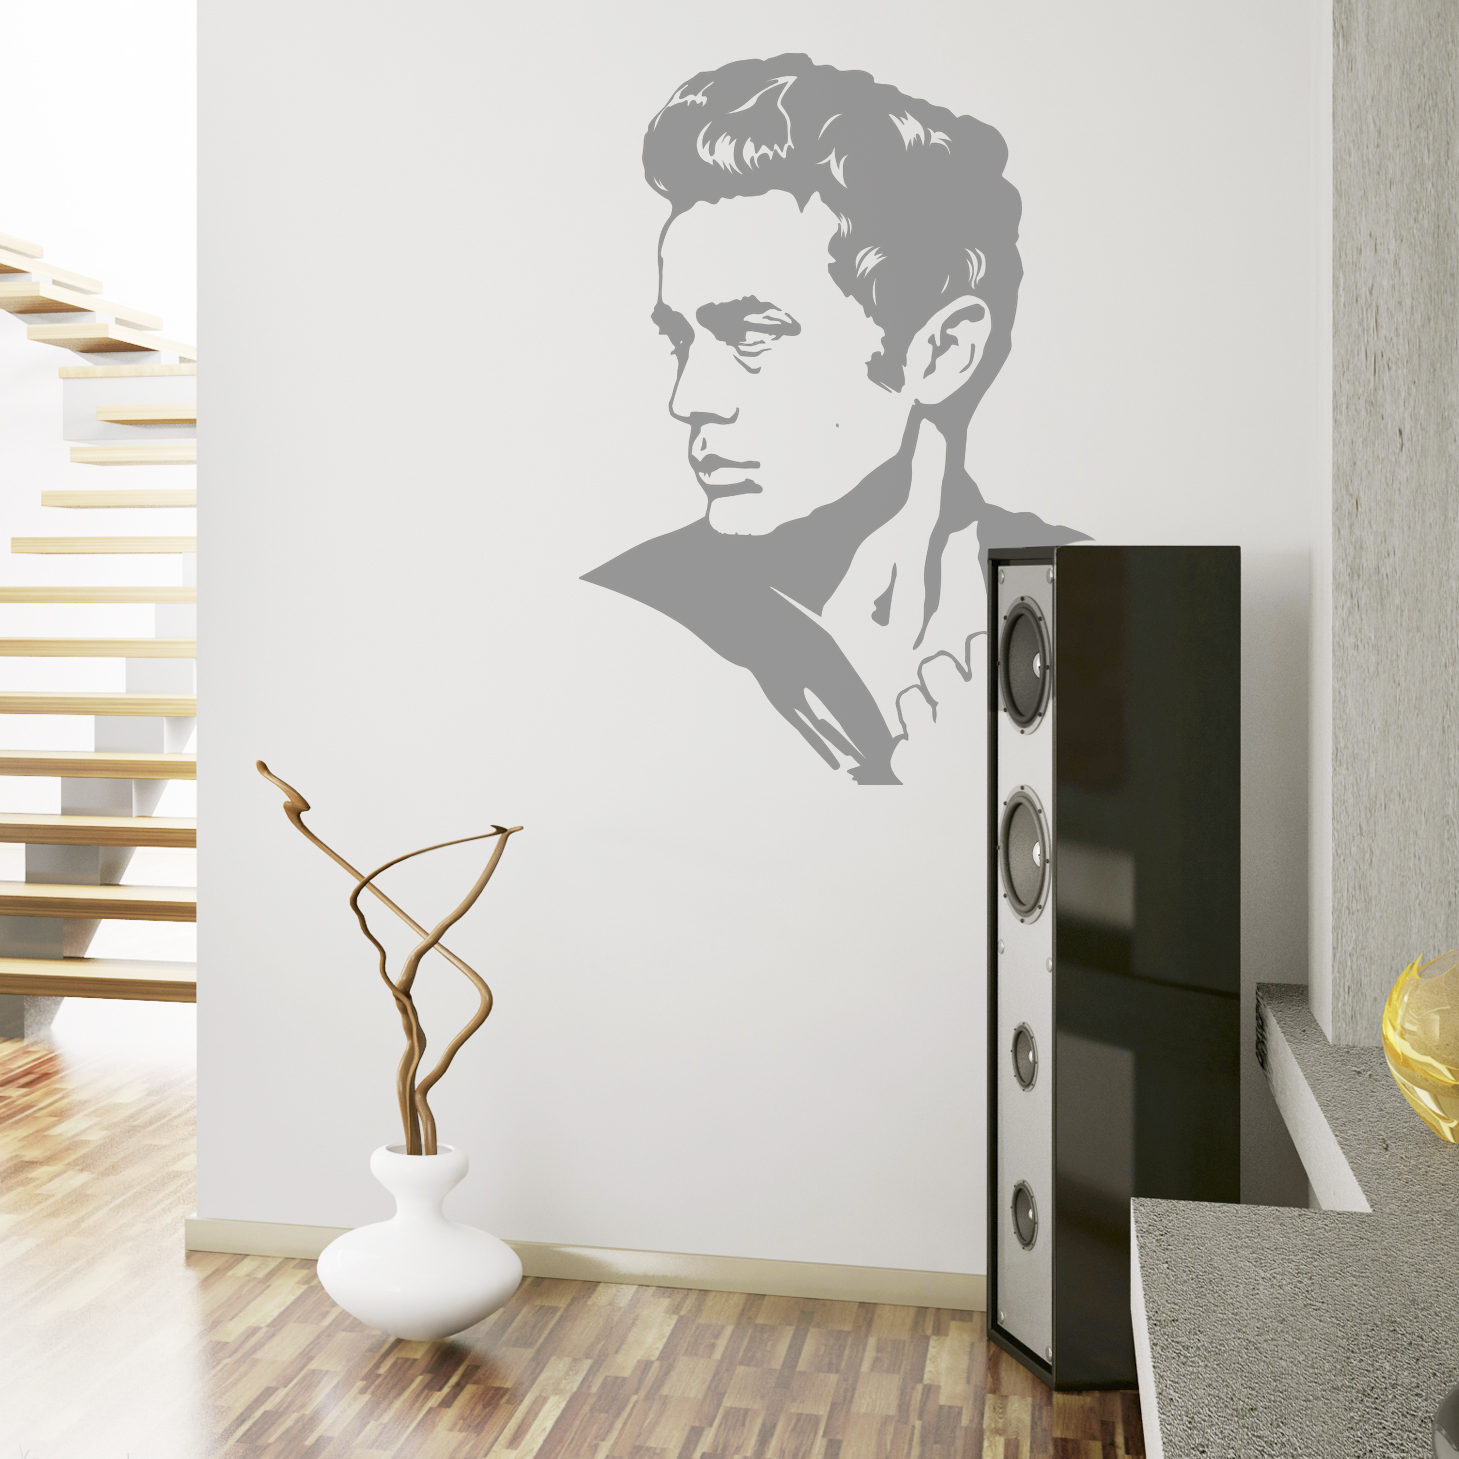 26JL-JamesDean-2-wall-decal.jpg & James Dean Wall Decal